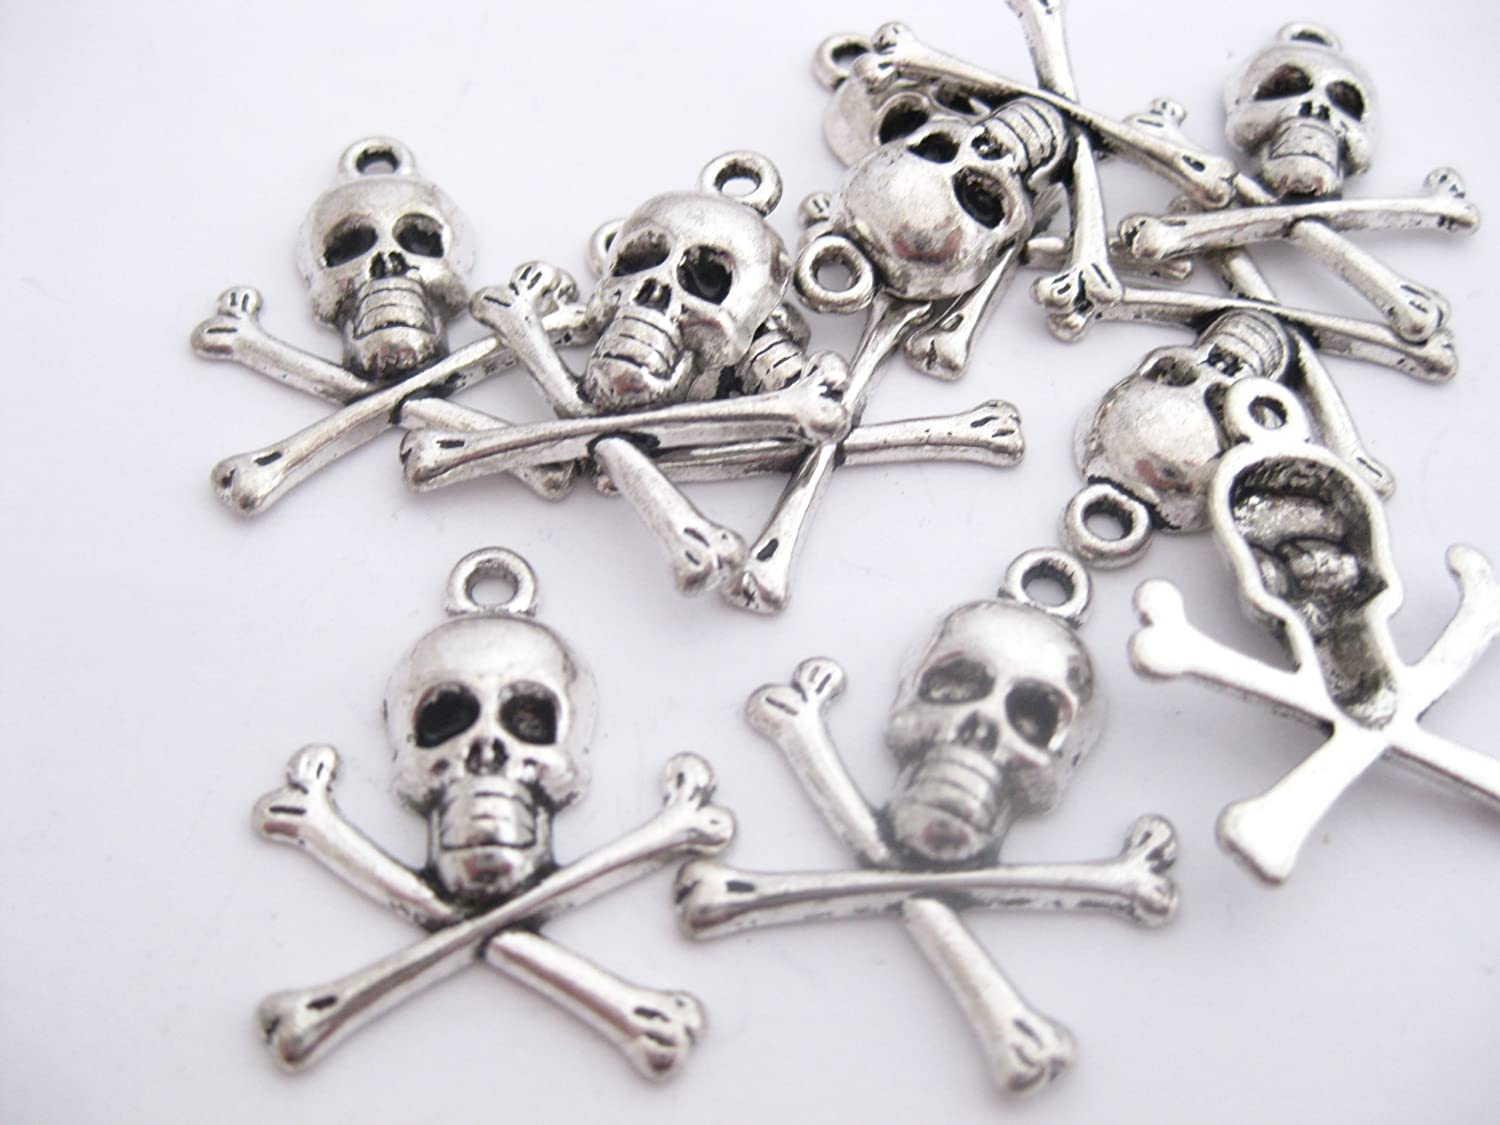 10 Tibetan Style Antique Silver Coloured Skull and Crossbones Charm/ Pendant 24mm x 21mm. CH016 Enchanted Jewels